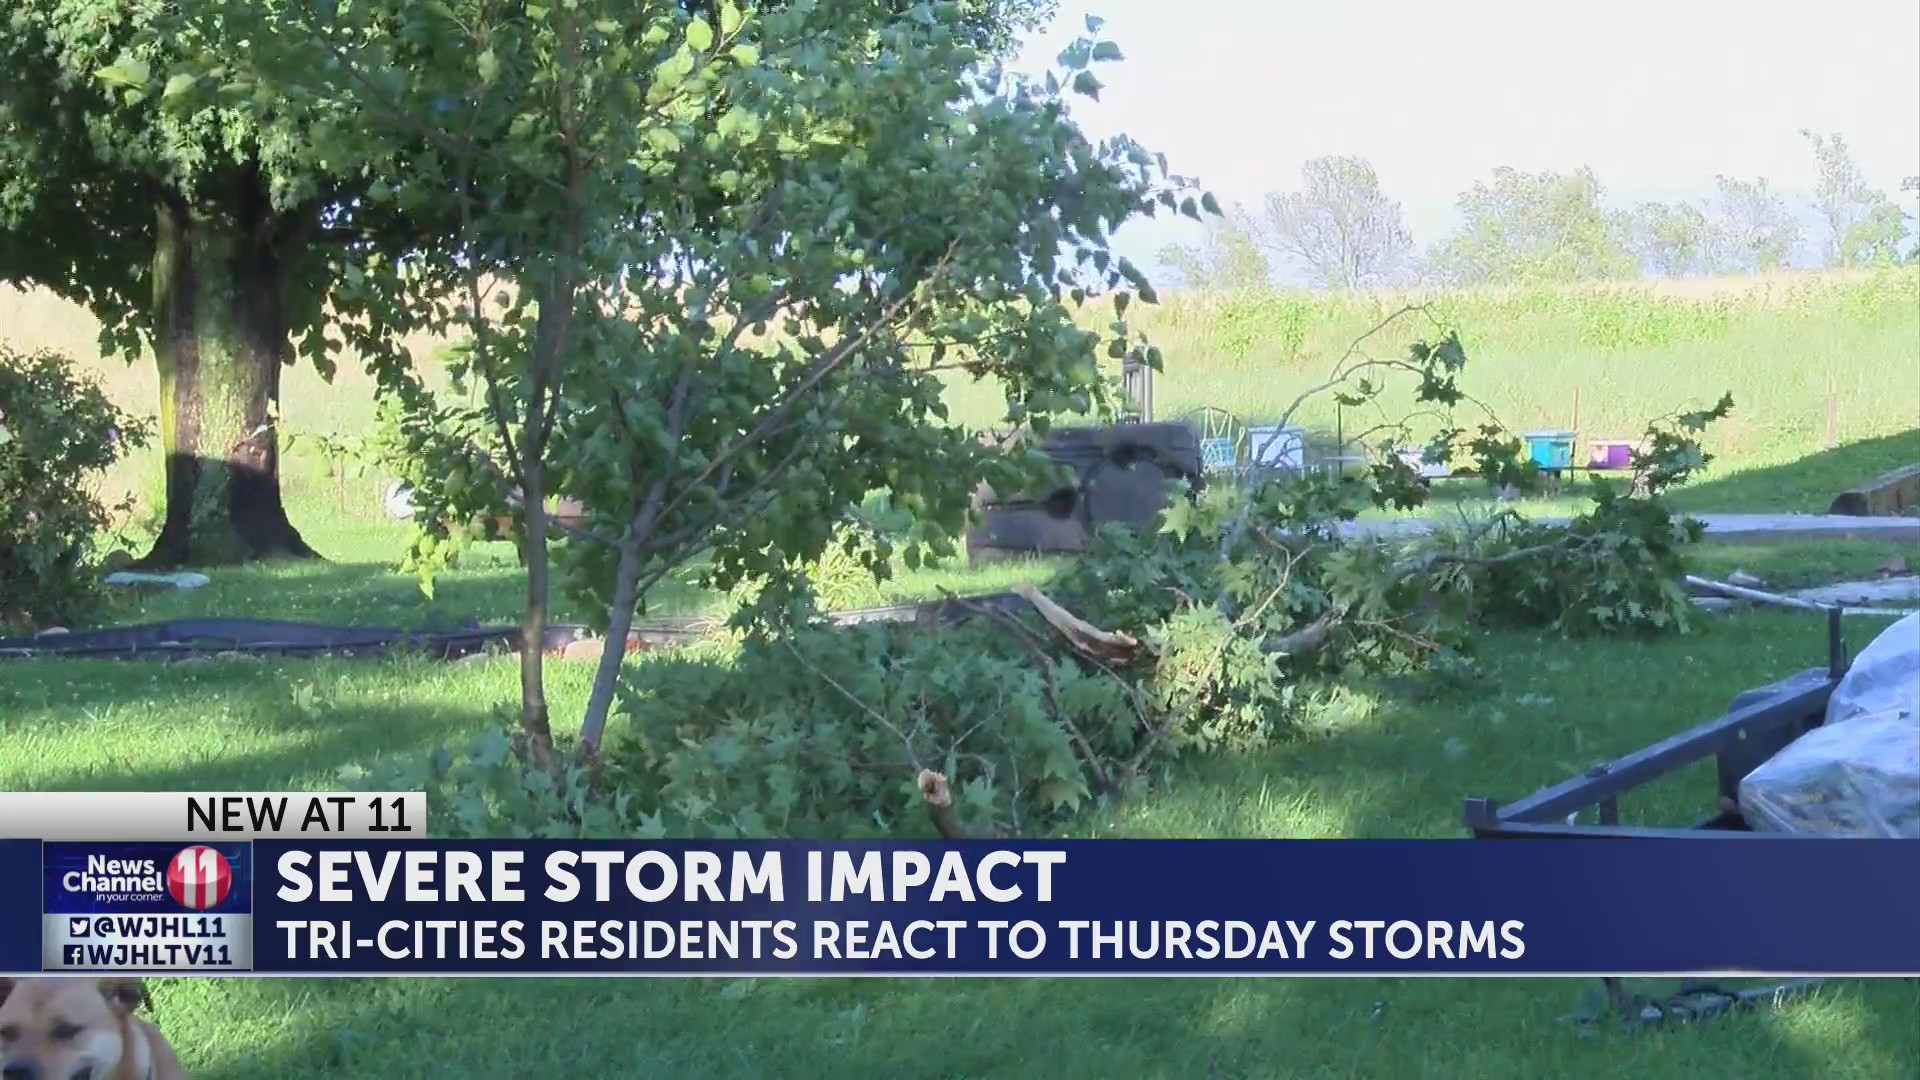 Severe storms leave heavy impact in Tri-Cities region